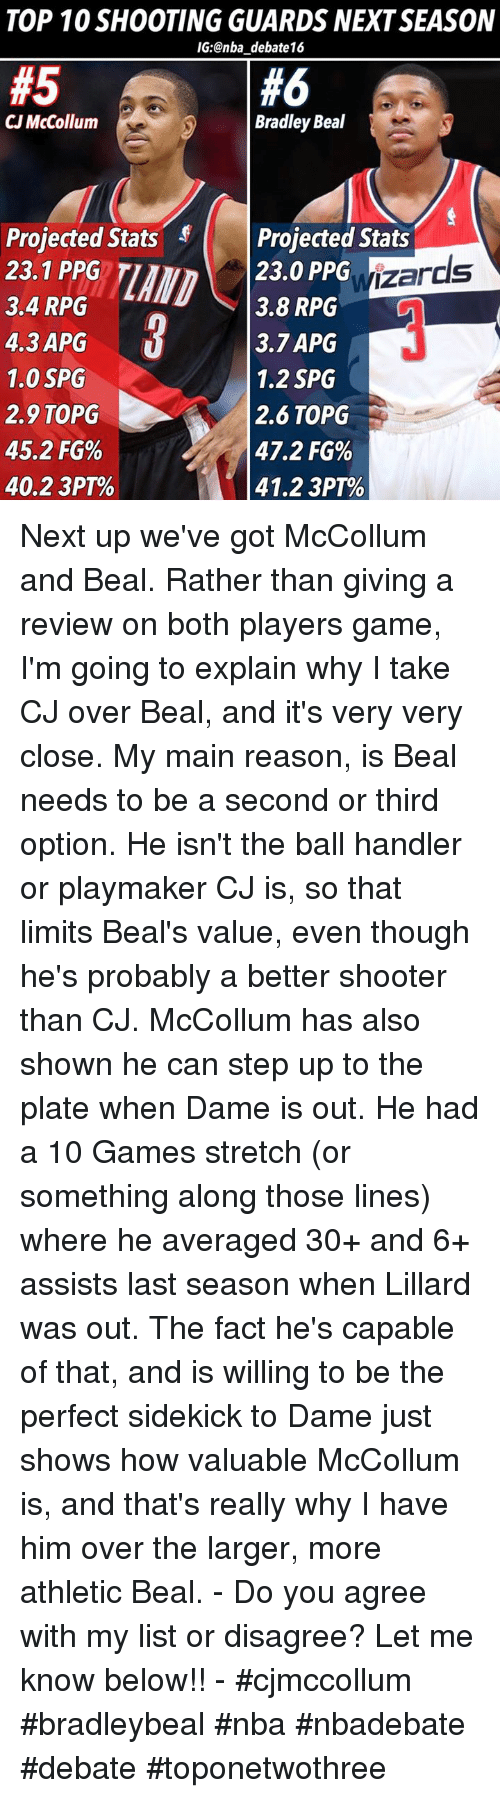 Facts, Nba, and Game: TOP 10 SHOOTING GUARDS NEXT SEASON  IG@nba_debate16  #5  #6  CJ McCollum  Bradley Beal  Projected Stats  23.1 PPG  3.4 RPG  4.3 APG  1.0 SPG  2.9 TOPG  45.2 FG%  40.2 3PT%  Projected Stats  23.0 PPG  3.8 RPG  3.7 APG  1.2 SPG  2.6 TOPG  47.2 FG%  41.2 3PT%  zards Next up we've got McCollum and Beal. Rather than giving a review on both players game, I'm going to explain why I take CJ over Beal, and it's very very close. My main reason, is Beal needs to be a second or third option. He isn't the ball handler or playmaker CJ is, so that limits Beal's value, even though he's probably a better shooter than CJ. McCollum has also shown he can step up to the plate when Dame is out. He had a 10 Games stretch (or something along those lines) where he averaged 30+ and 6+ assists last season when Lillard was out. The fact he's capable of that, and is willing to be the perfect sidekick to Dame just shows how valuable McCollum is, and that's really why I have him over the larger, more athletic Beal. - Do you agree with my list or disagree? Let me know below!! - #cjmccollum #bradleybeal #nba #nbadebate #debate #toponetwothree